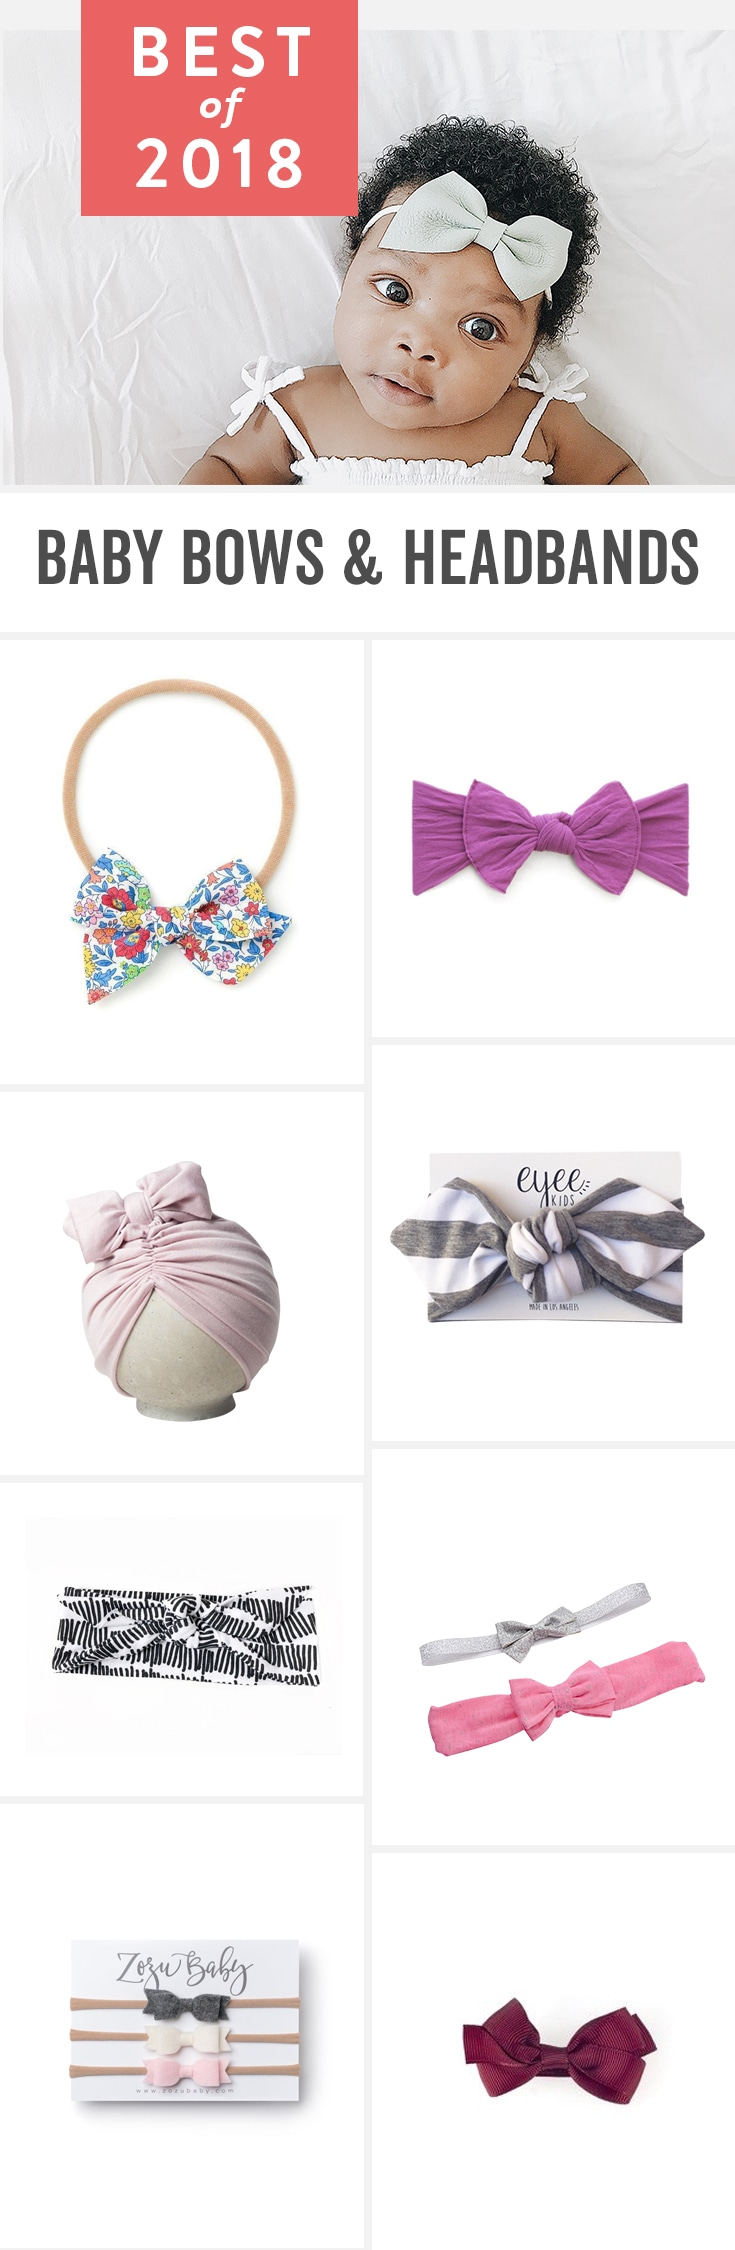 Babylist is the baby registry that lets you add any item from any store to one beautiful registry including the best baby bows and headbands for girls. Best bows for newborns and toddlers. Cute and small/little styles or giant unique bows too.